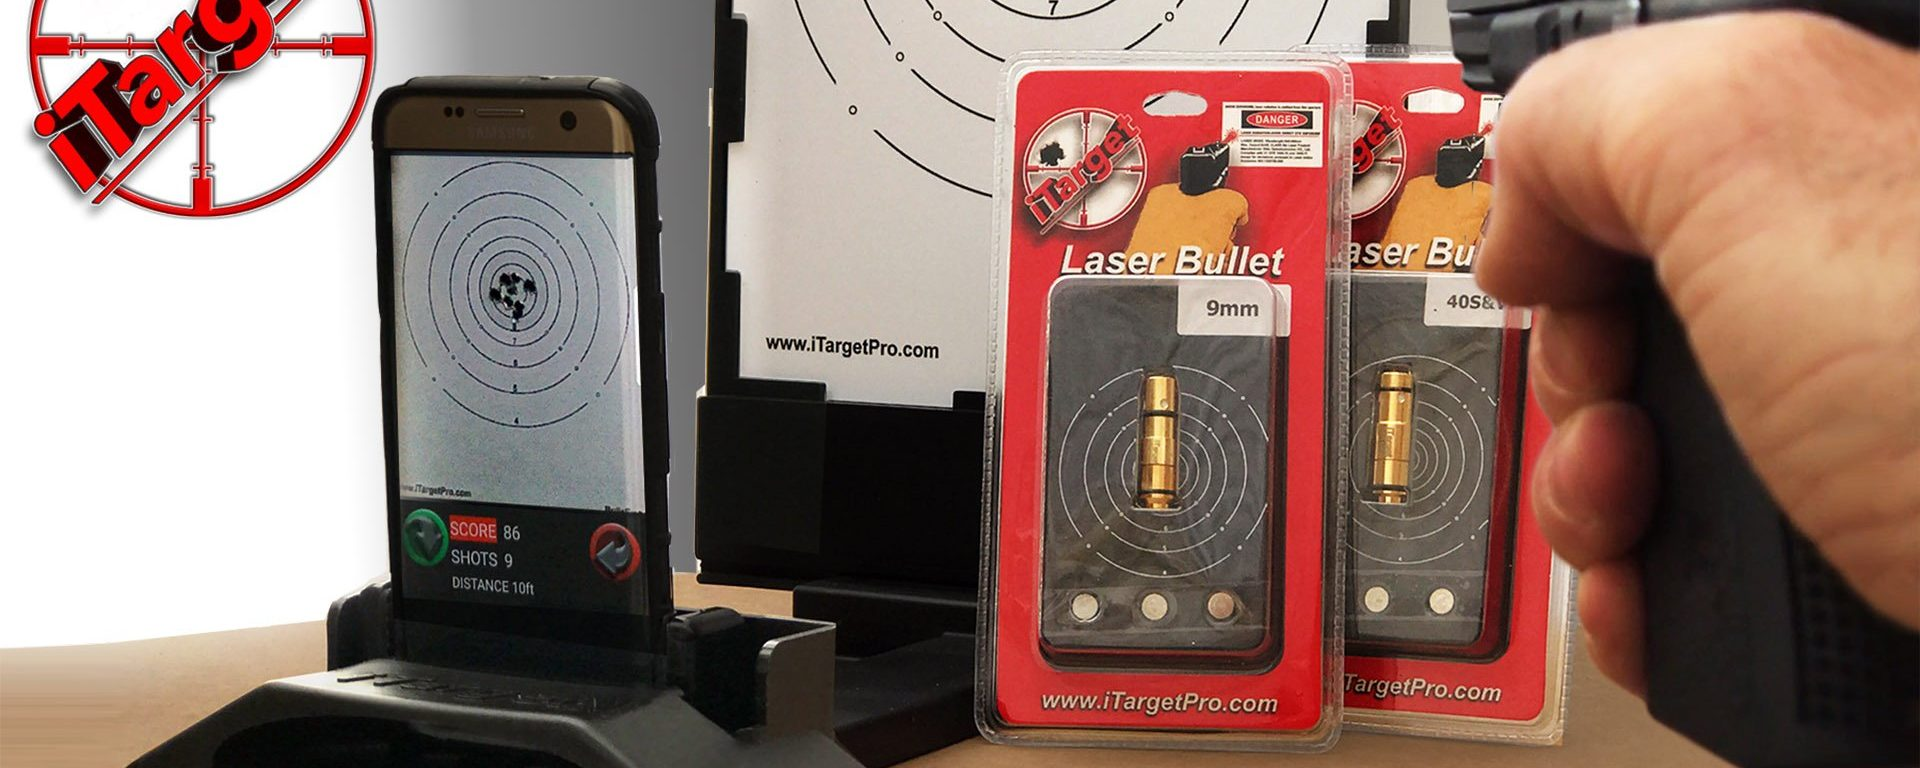 iTarget Training System For Effective Dry-Fire Practice